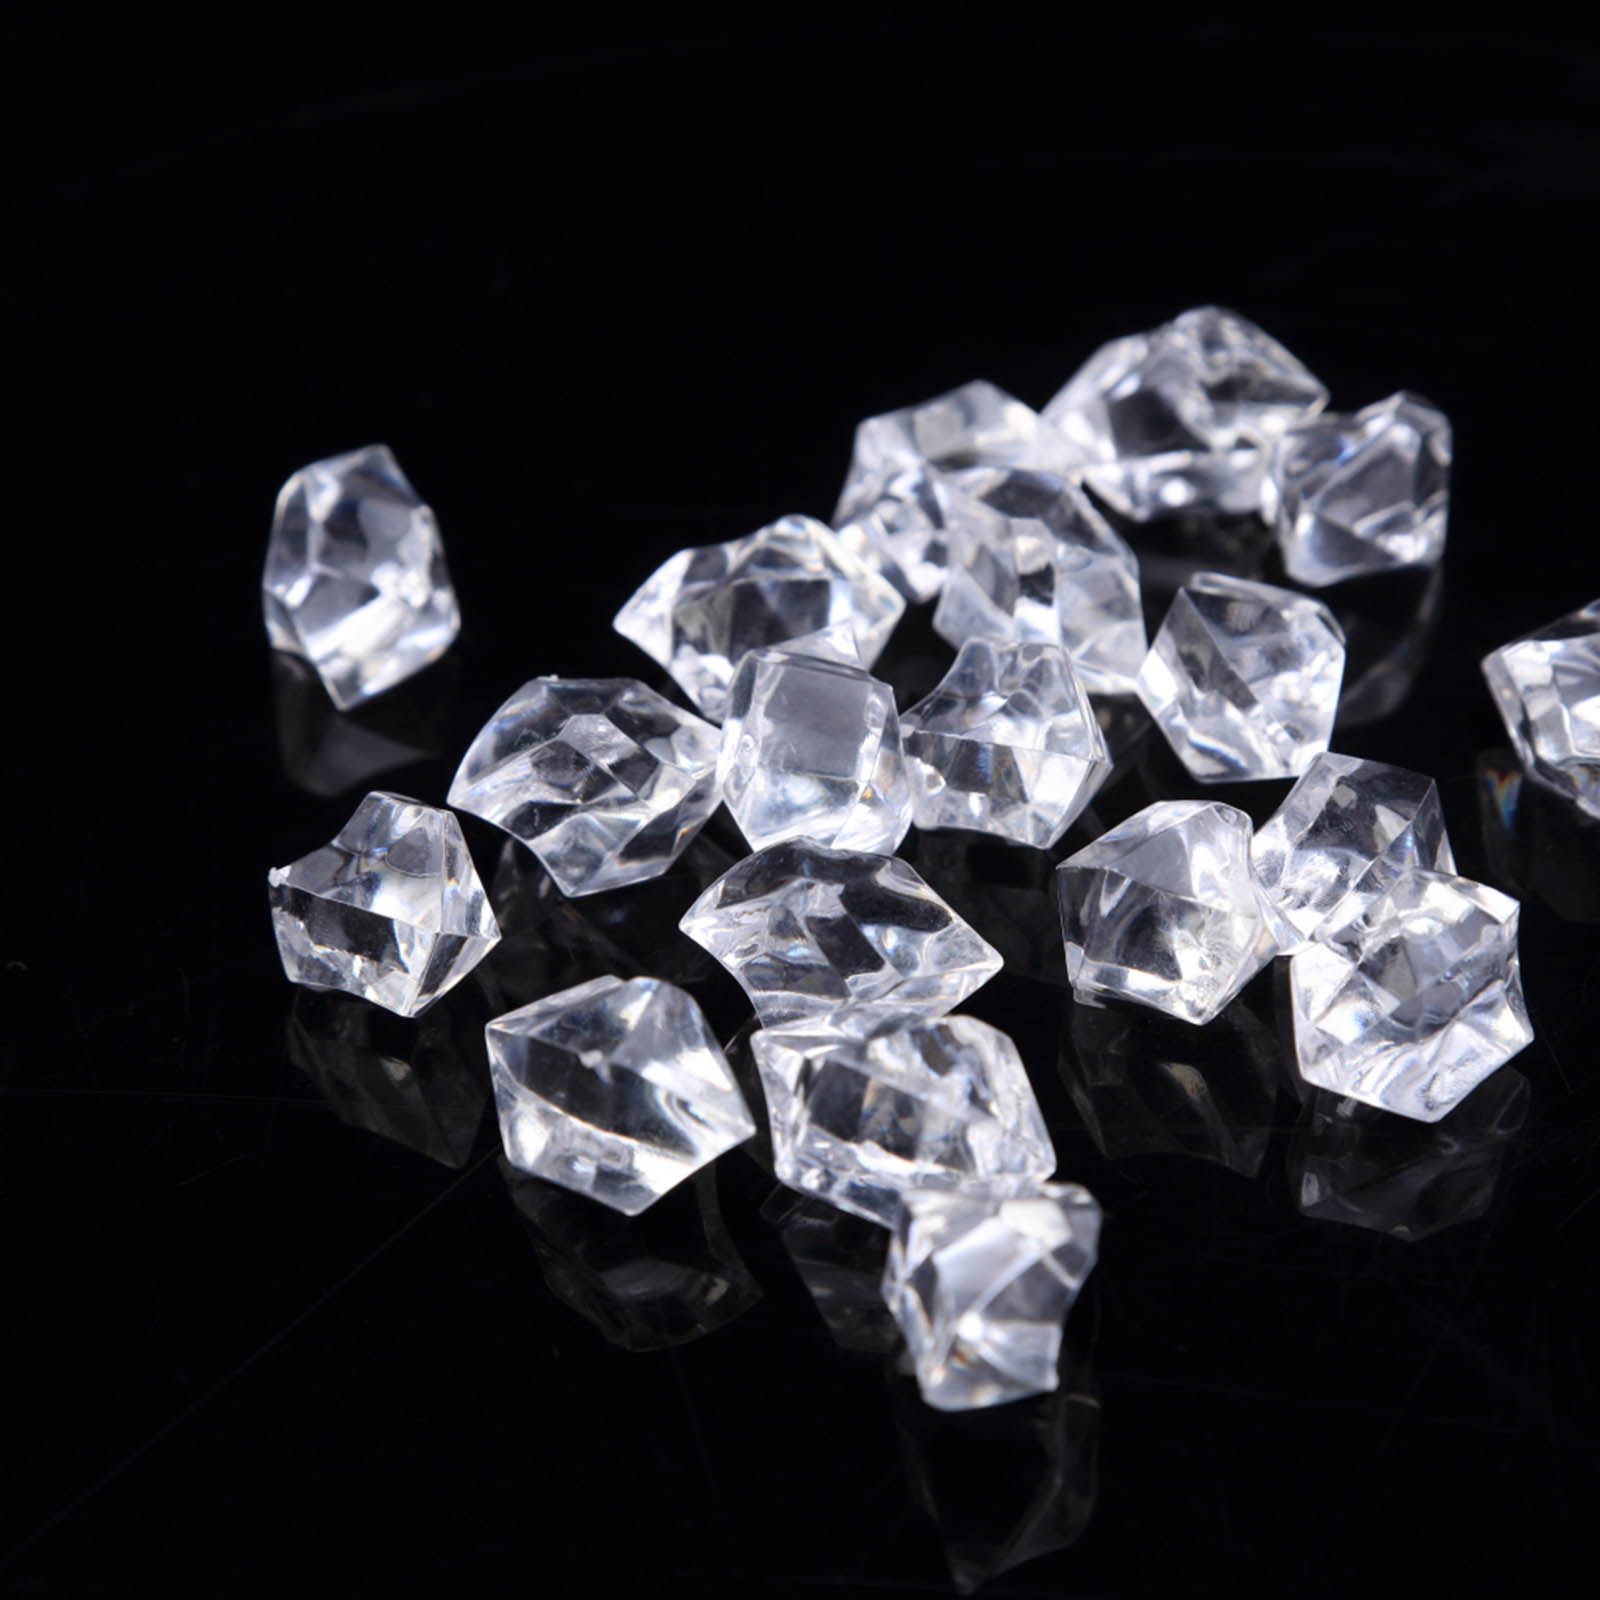 300-Acrylic-Ice-CRYSTAL-LIKE-Pieces-Wedding-Centerpieces-Decorations-Supplies thumbnail 23